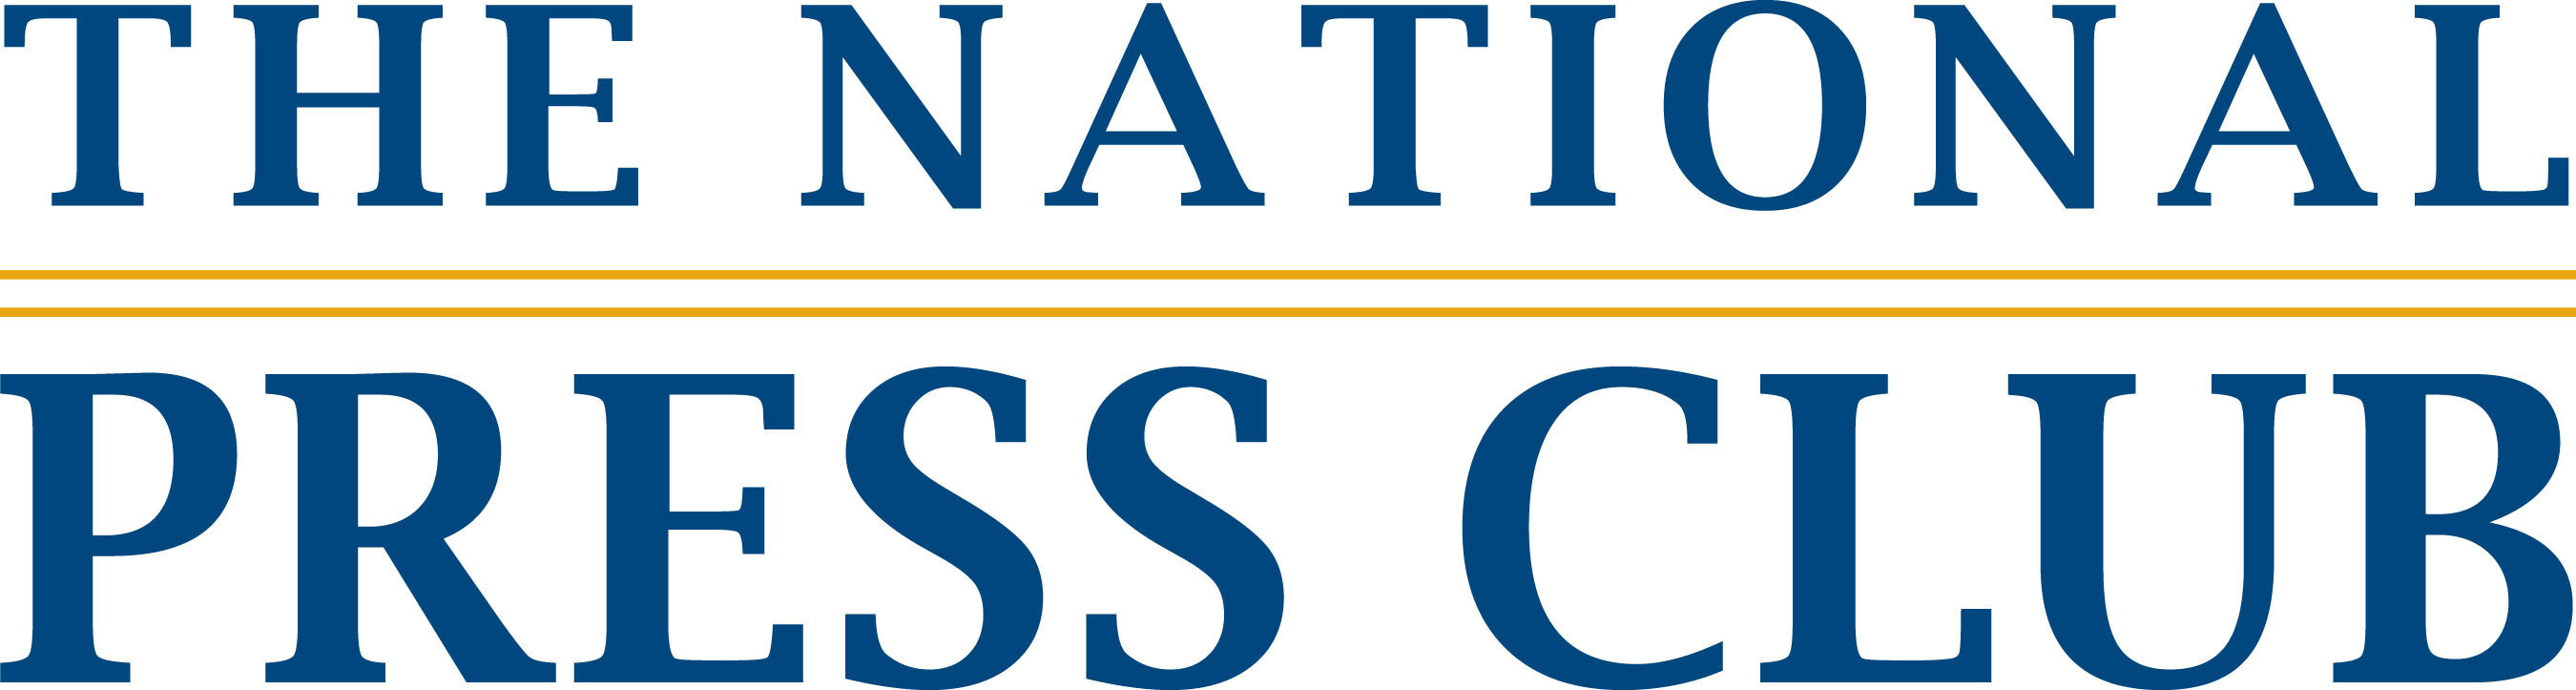 NATIONAL PRESS CLUB LOGO